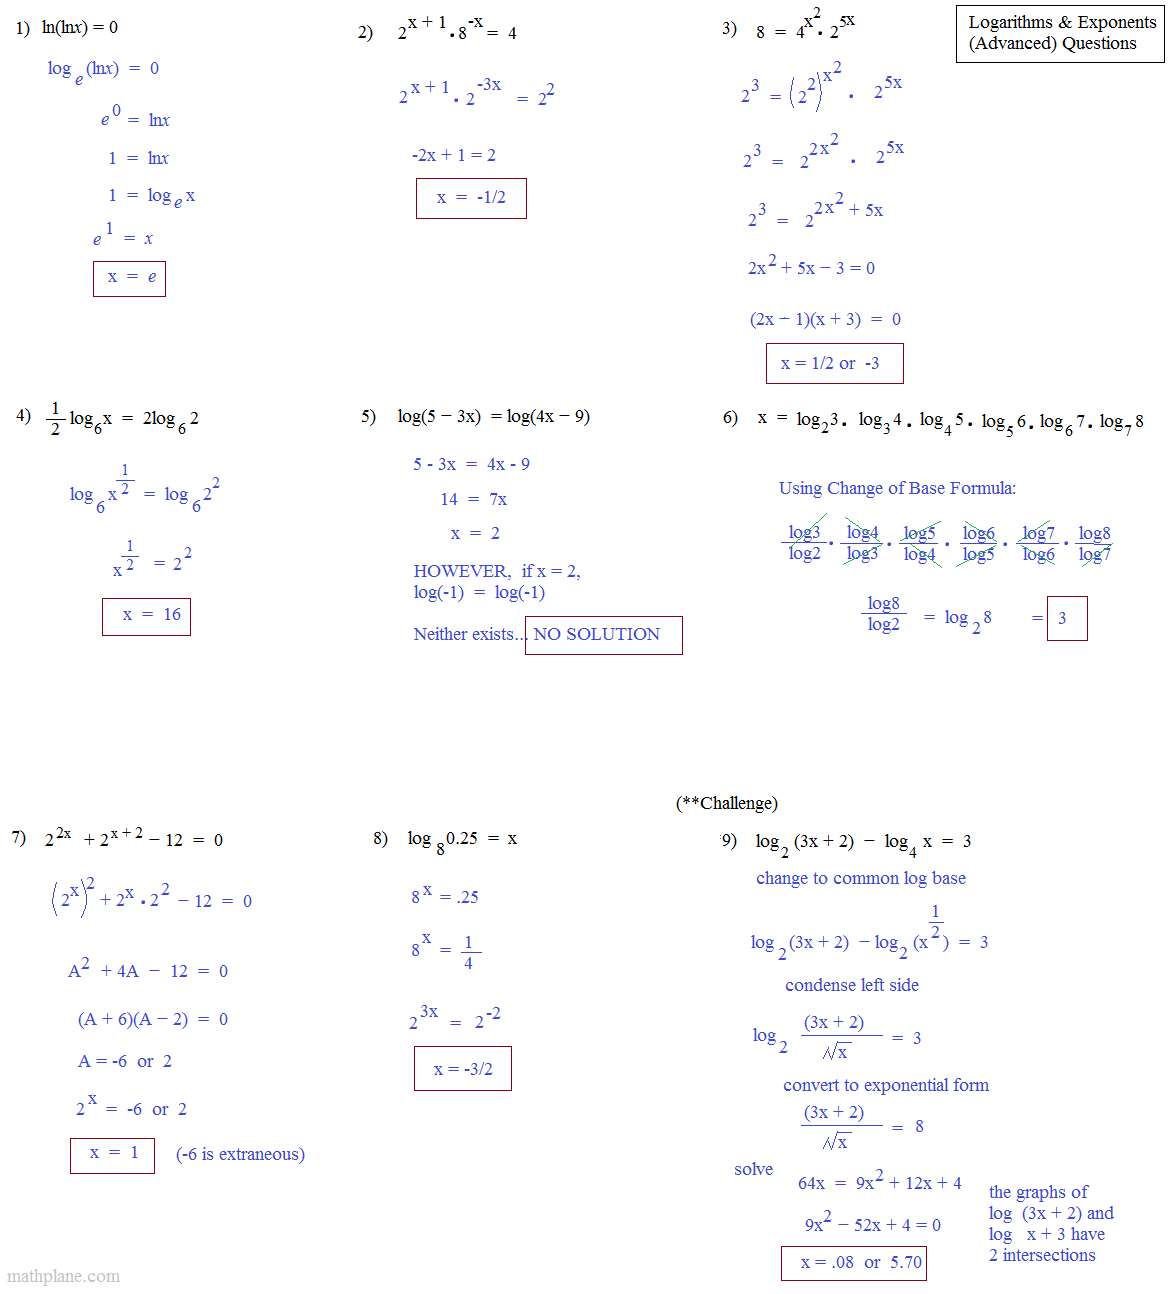 Math Plane - Logarithms and Exponents III (Advanced)